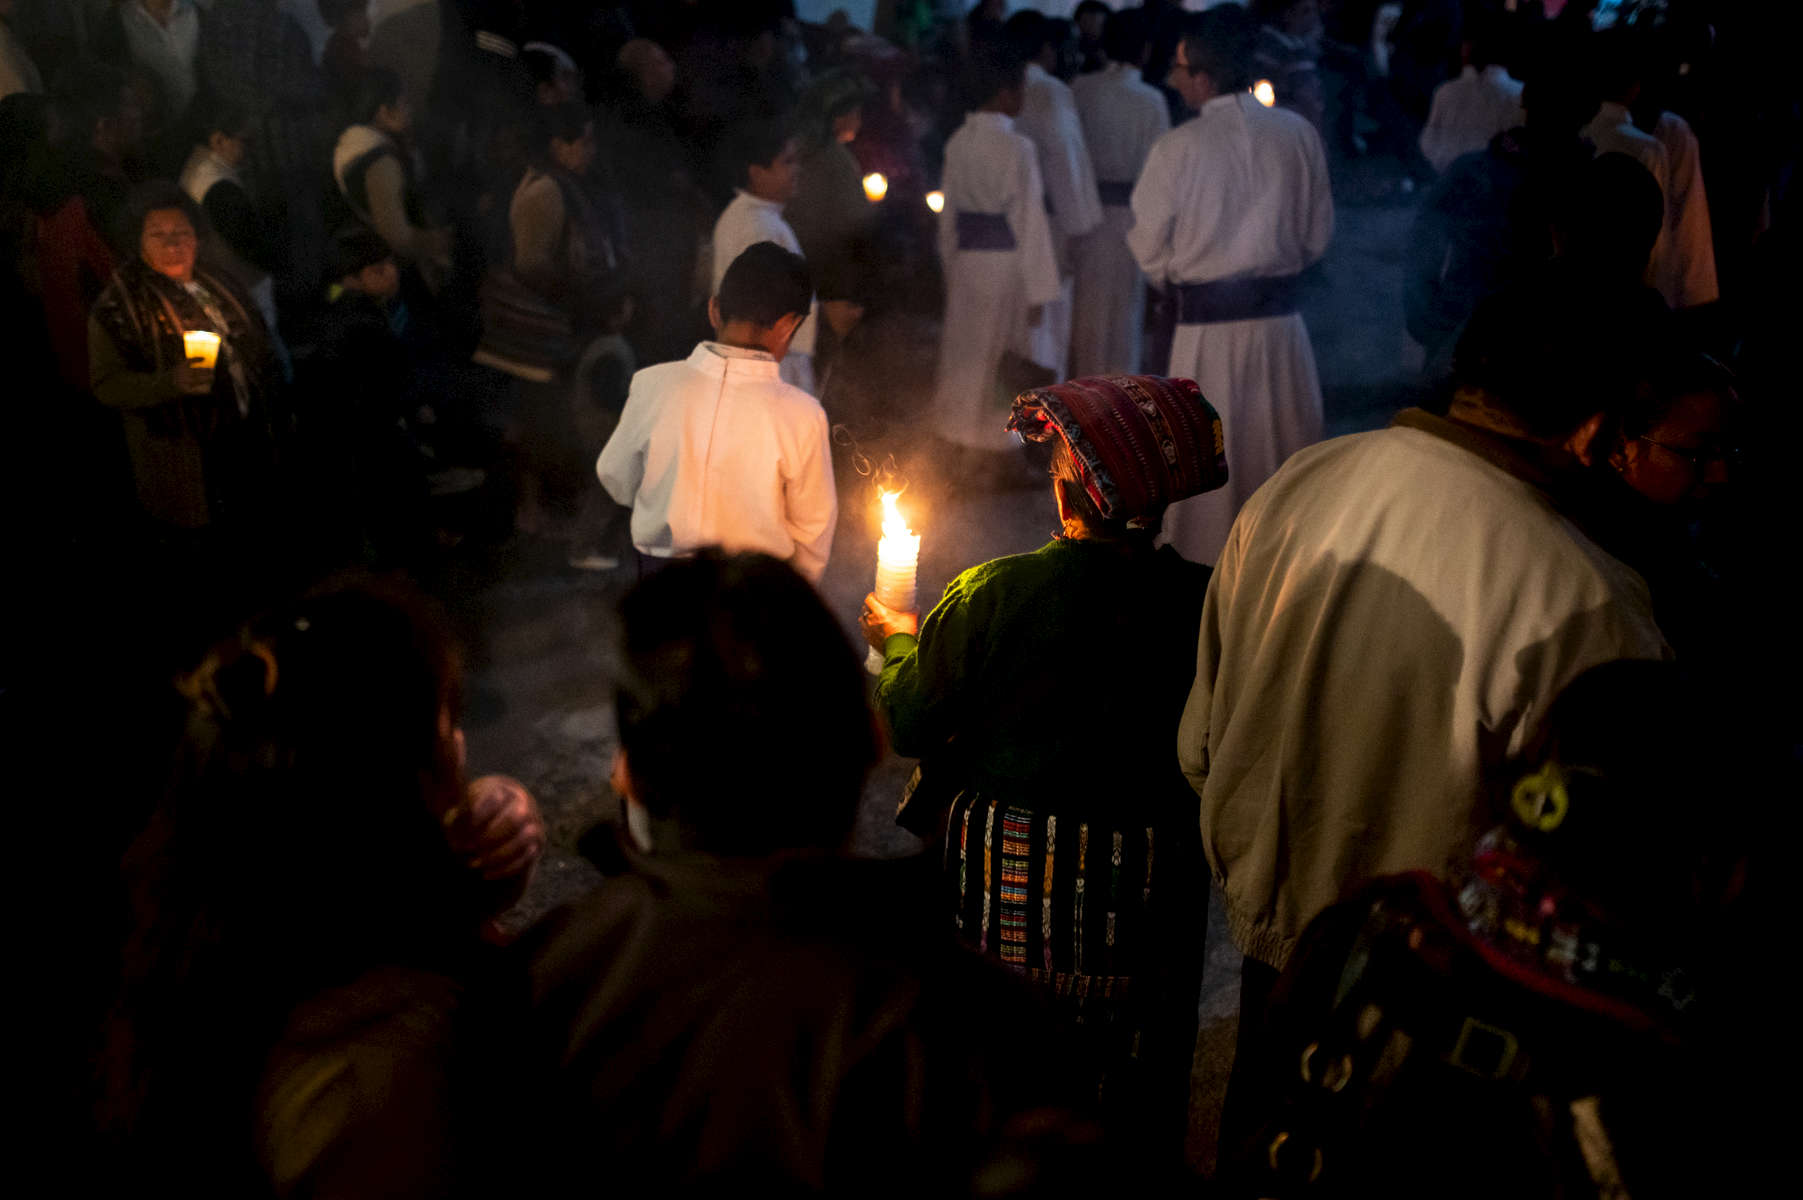 A Mayan woman holds a candle as she walks with the procession on March 29th, 2019 during Lent in Panajachel, Guatemala.